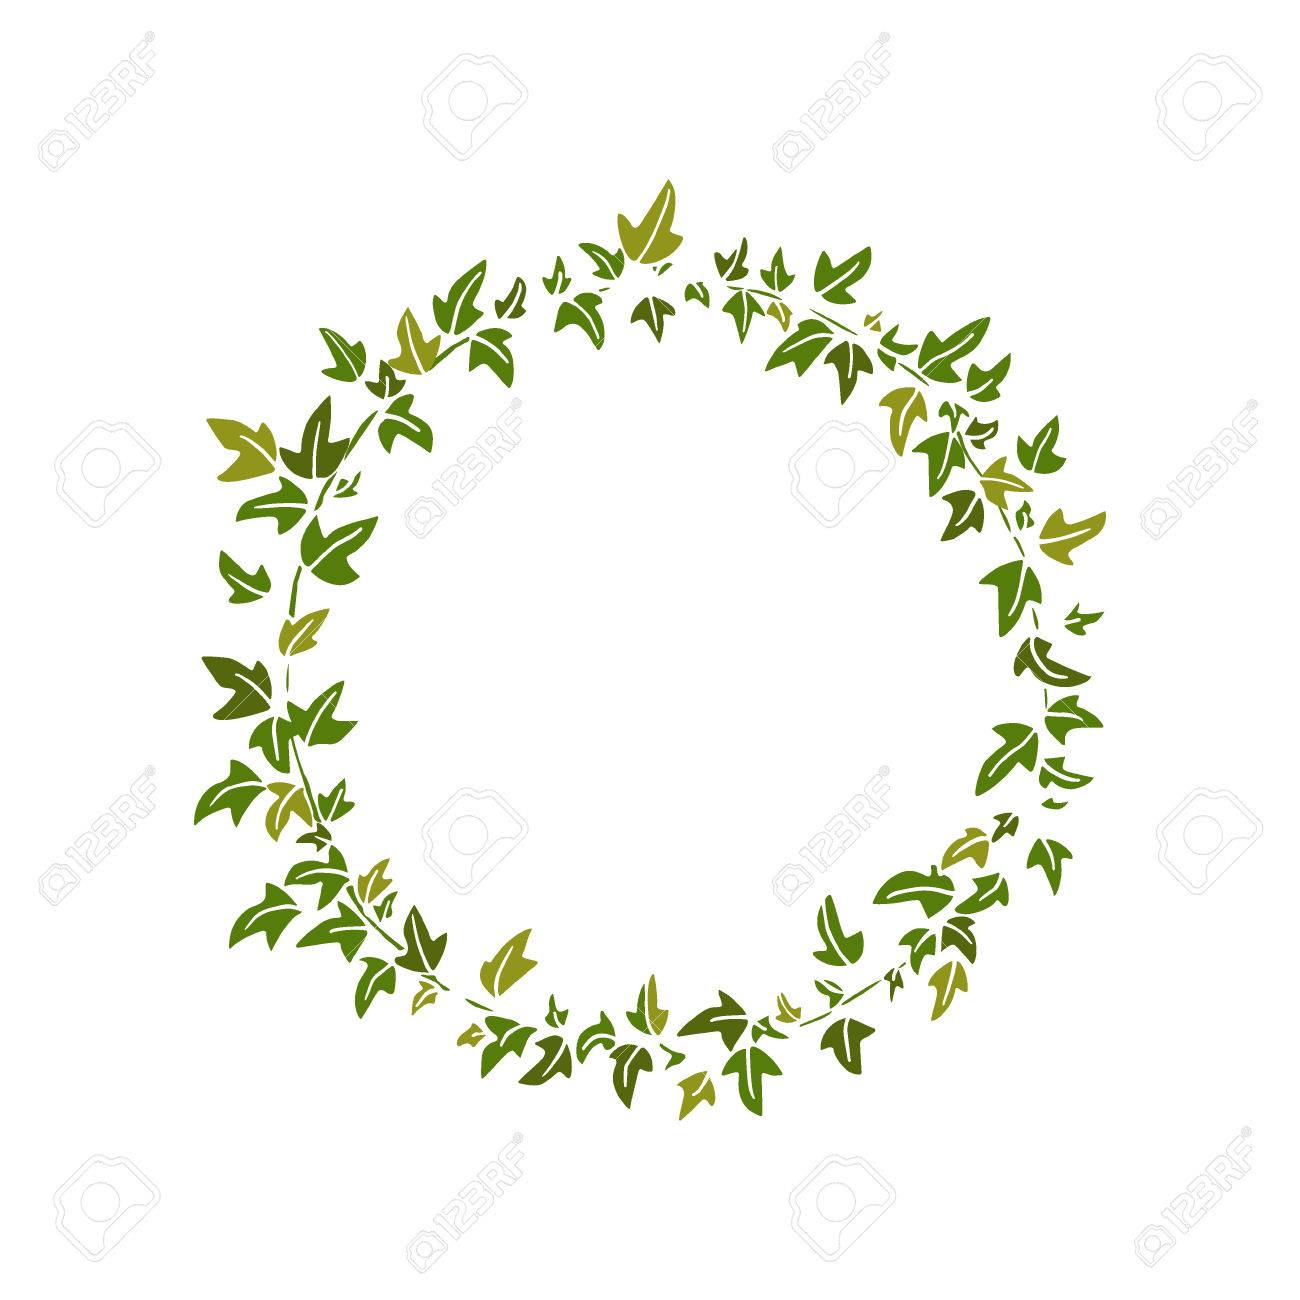 English Ivy Wreath Royalty Free Cliparts Vectors And Stock Illustration Image 78675061